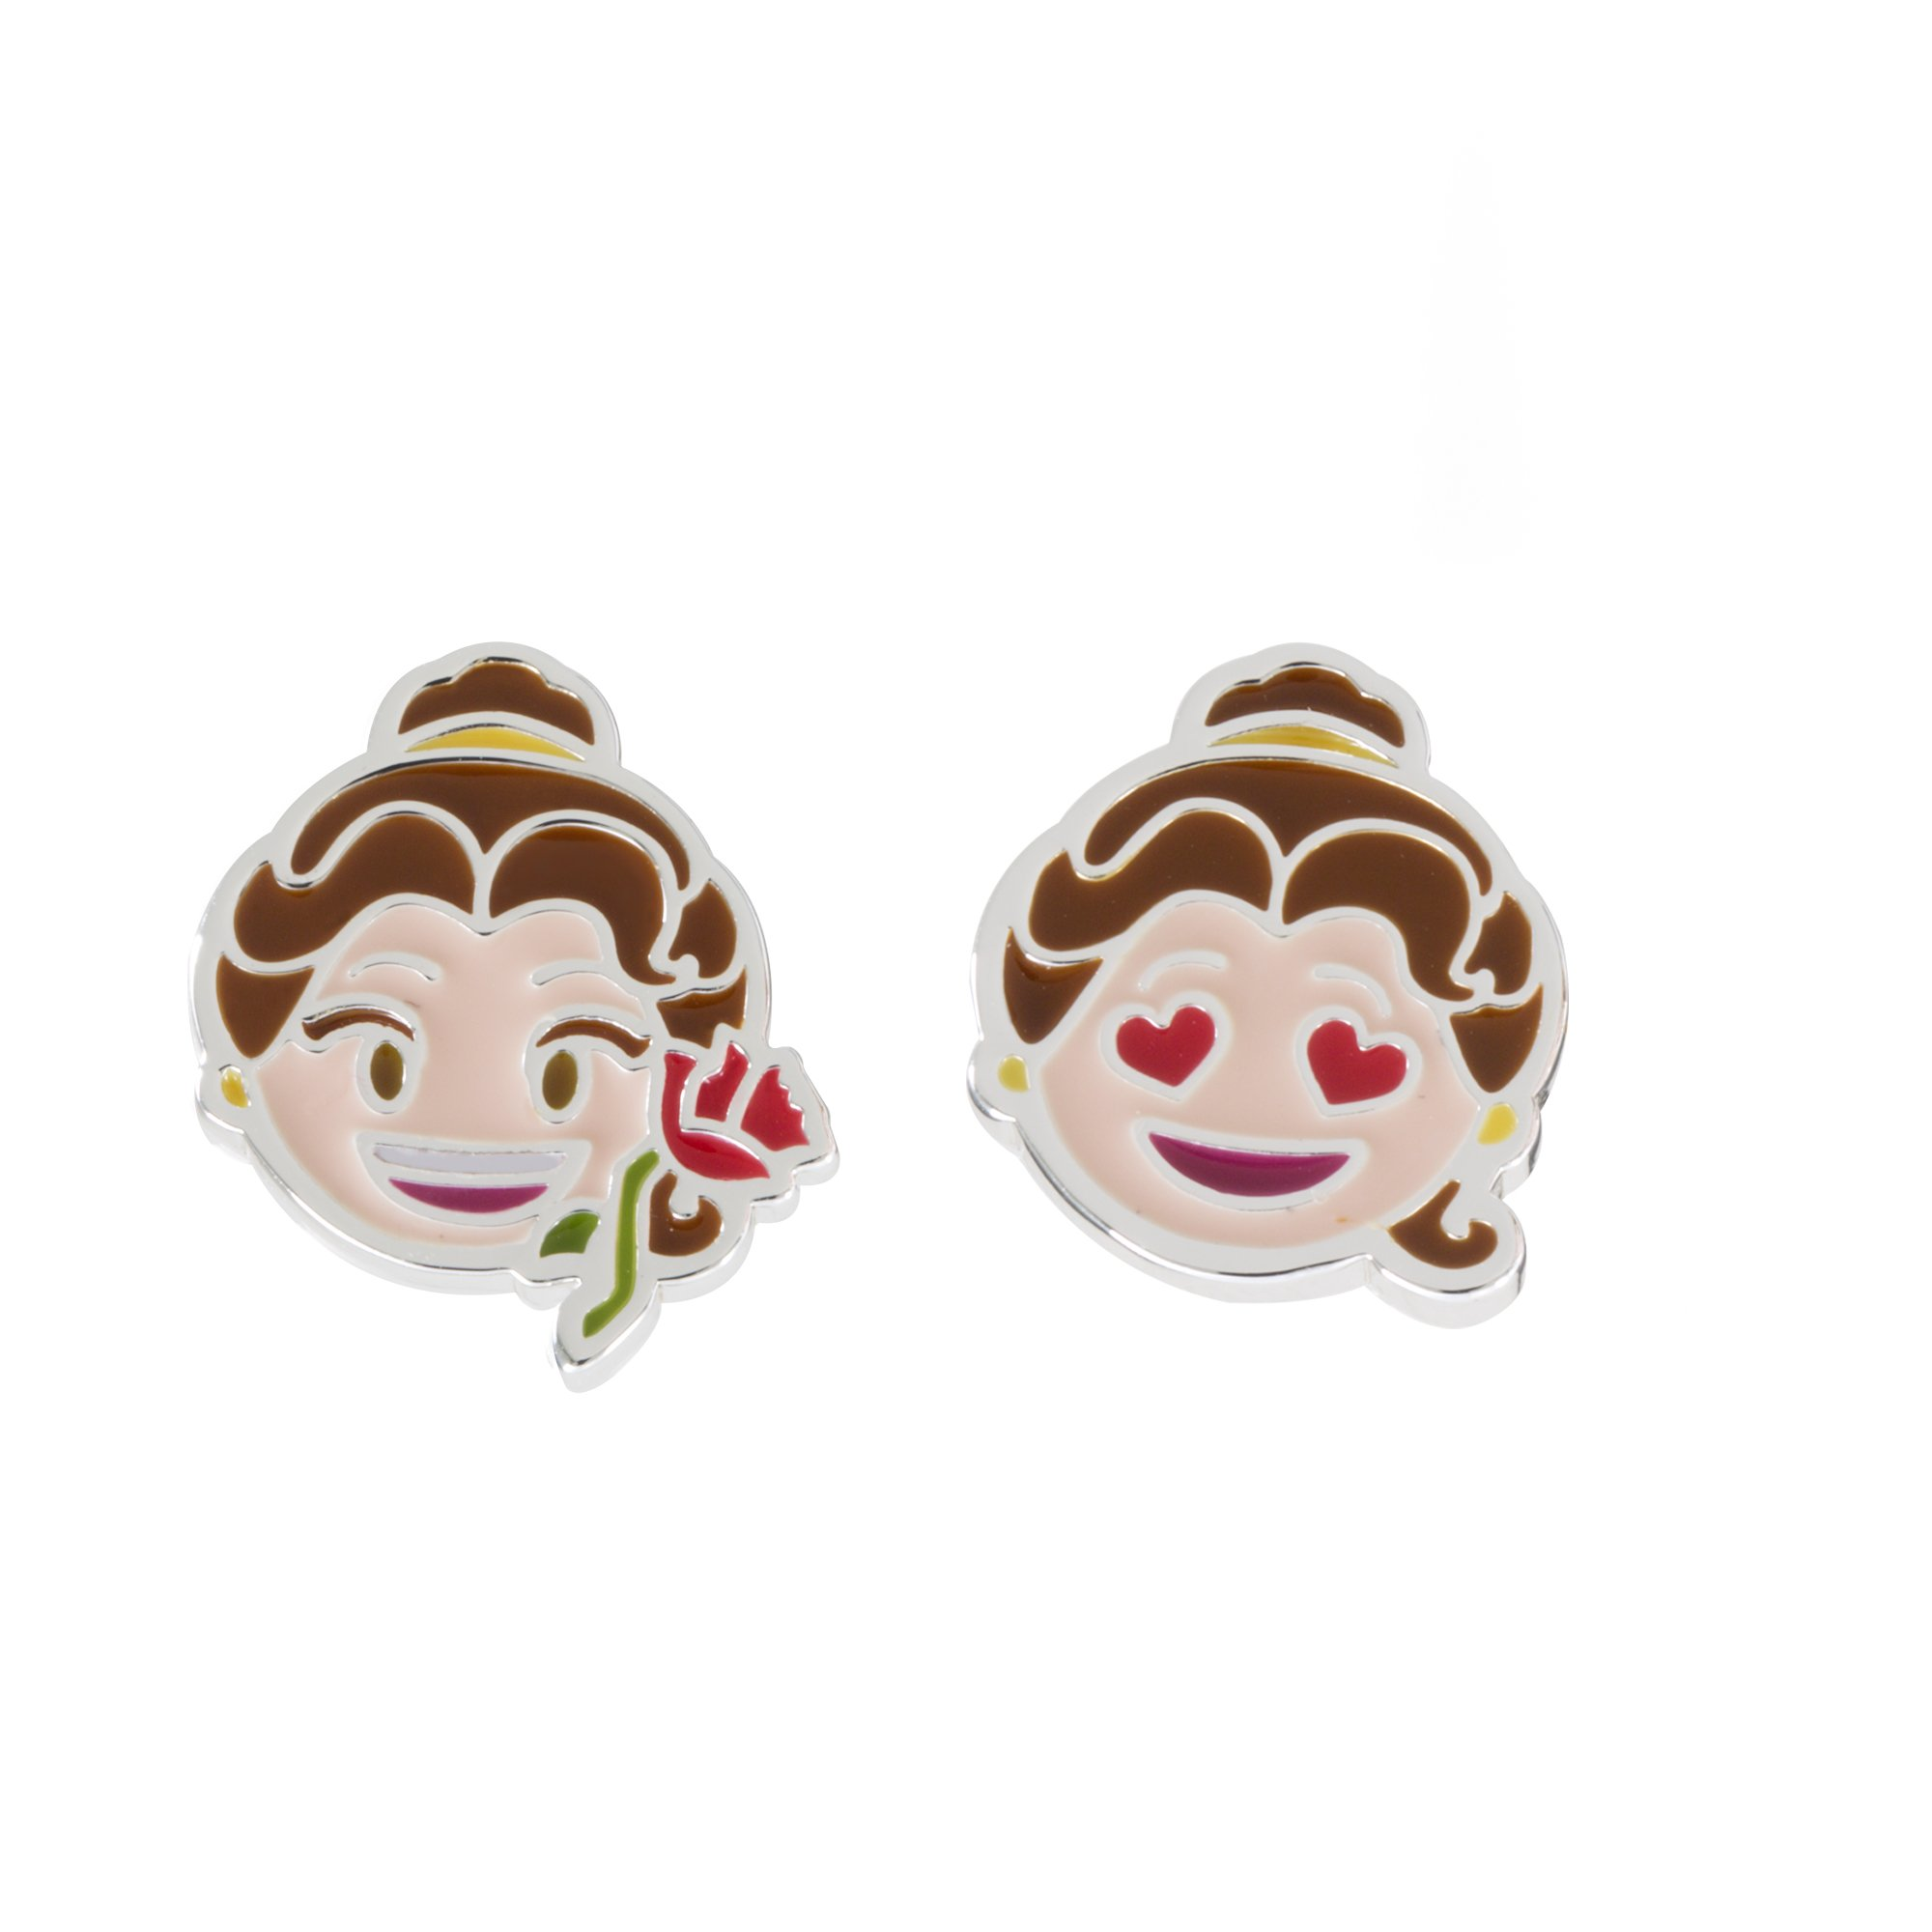 Disney Women's and Girls Jewelry Beauty and the Beast Silver Plated Mix Match Stud Earrings by Disney (Image #1)